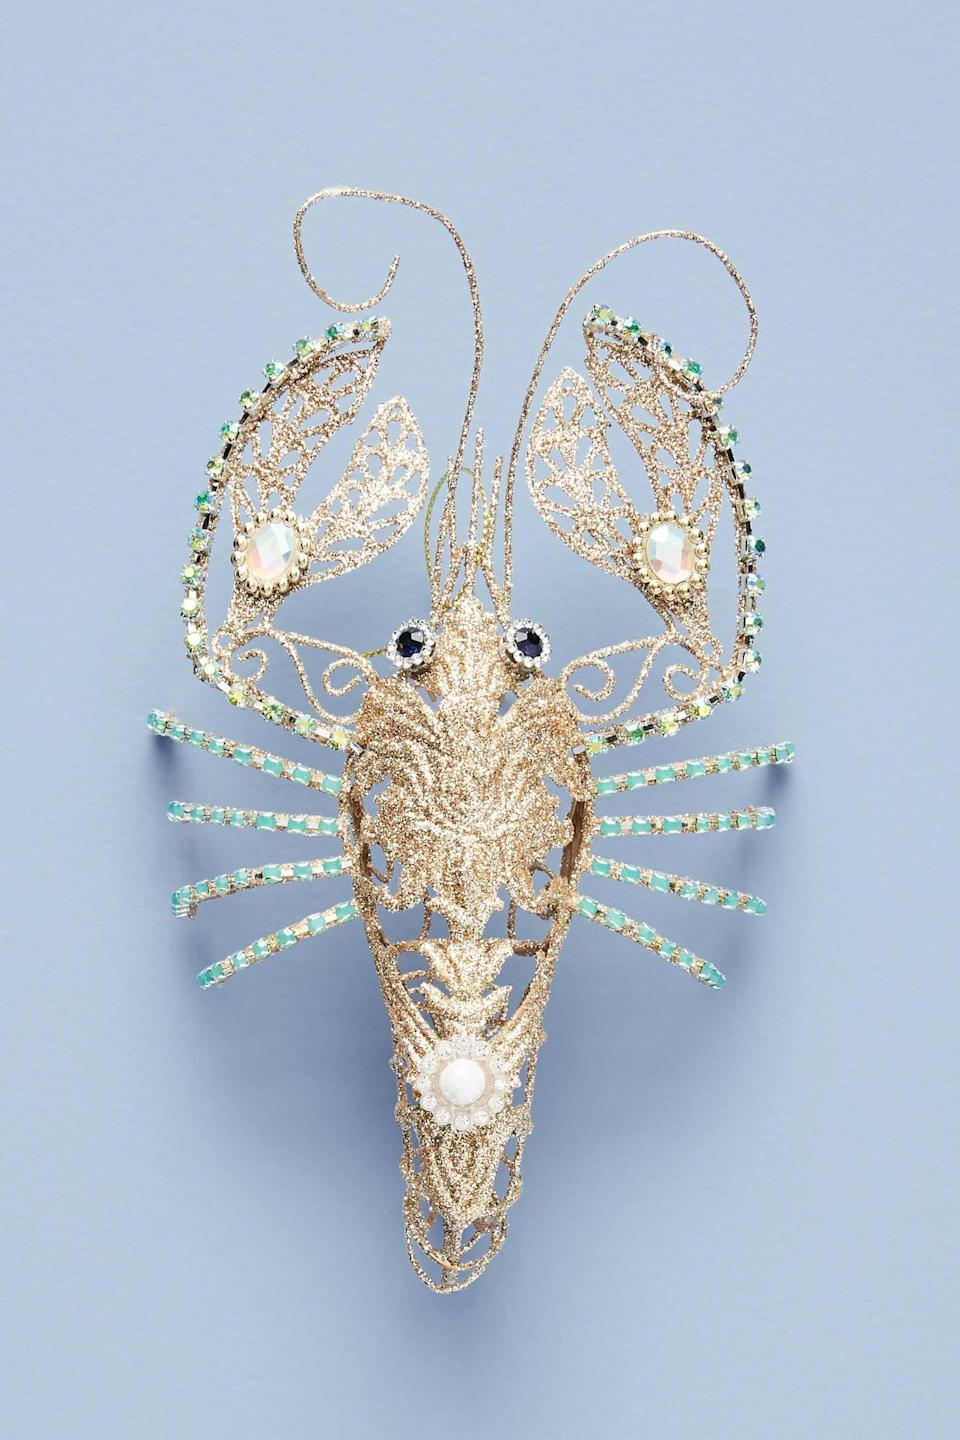 """<p>Add a touch of glamour and oceanic charm to your tree with the <a href=""""https://www.popsugar.com/buy/Embellished-Lobster-Ornament-490522?p_name=Embellished%20Lobster%20Ornament&retailer=anthropologie.com&pid=490522&price=28&evar1=casa%3Aus&evar9=46615300&evar98=https%3A%2F%2Fwww.popsugar.com%2Fhome%2Fphoto-gallery%2F46615300%2Fimage%2F46615392%2FEmbellished-Lobster-Ornament&list1=shopping%2Canthropologie%2Choliday%2Cchristmas%2Cchristmas%20decorations%2Choliday%20decor%2Chome%20shopping&prop13=mobile&pdata=1"""" rel=""""nofollow noopener"""" class=""""link rapid-noclick-resp"""" target=""""_blank"""" data-ylk=""""slk:Embellished Lobster Ornament"""">Embellished Lobster Ornament</a> ($28).</p>"""